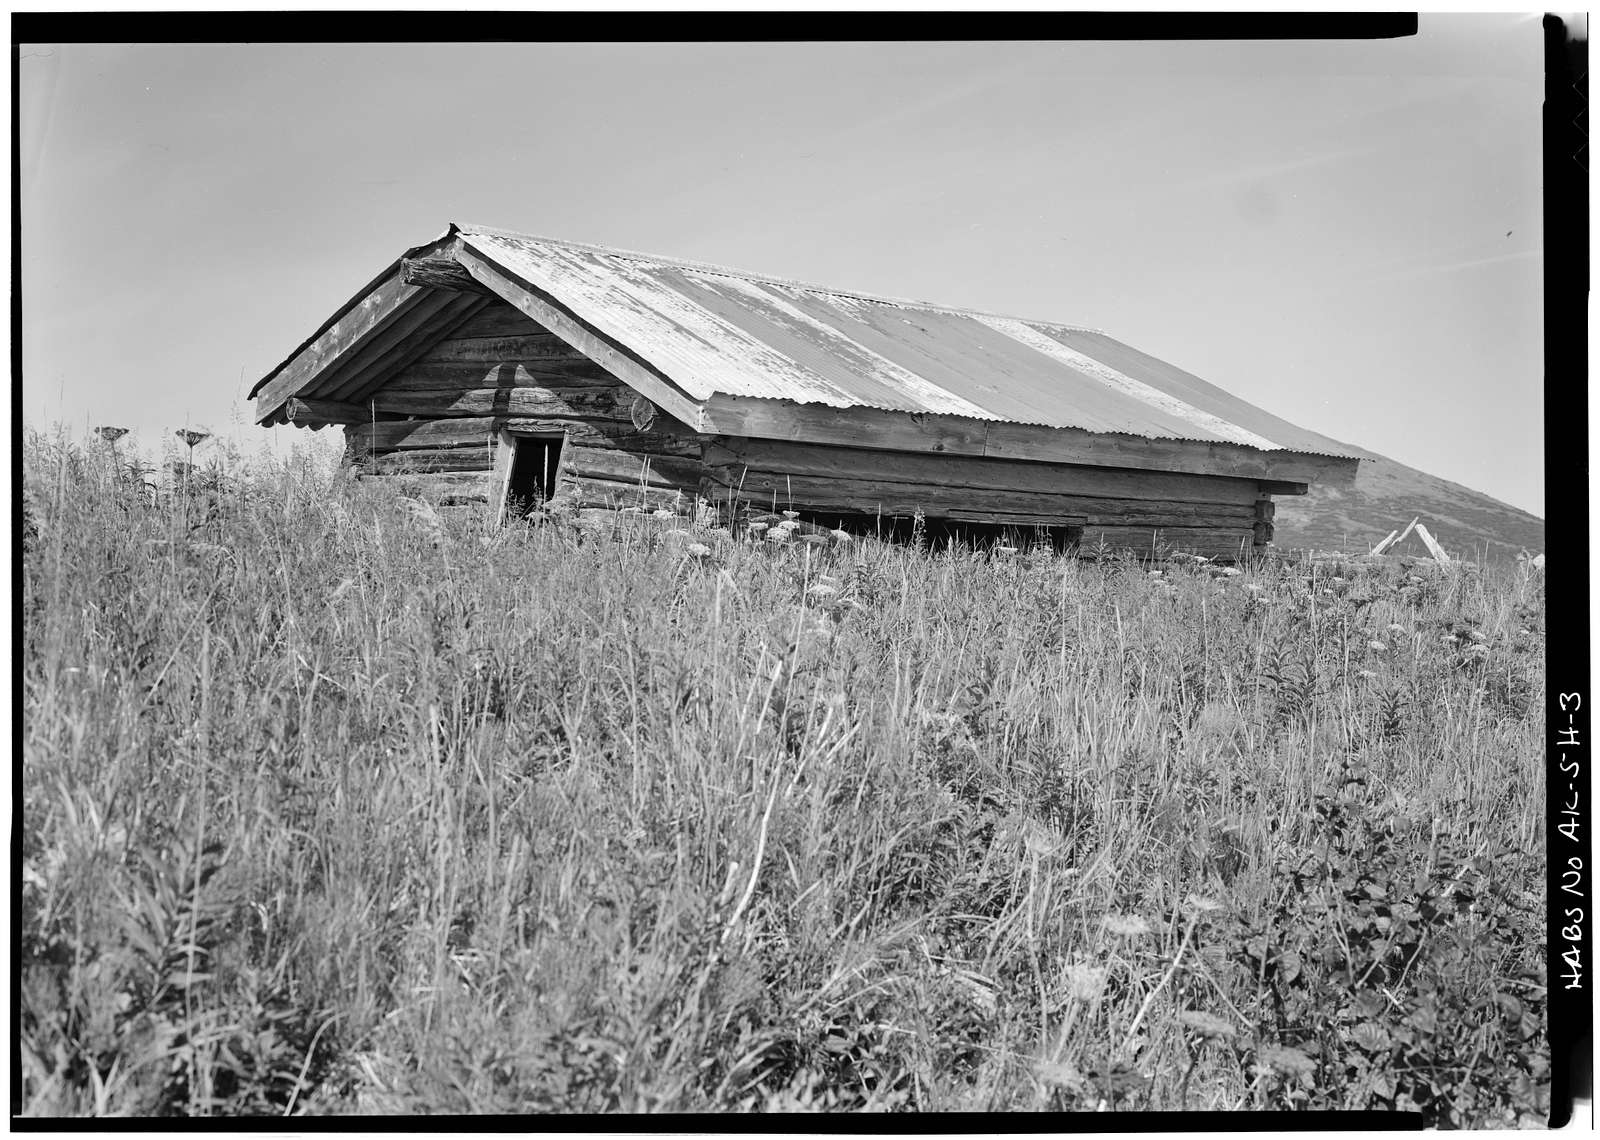 Iditarod Trail Shelter Cabins, Moses Point Shelter Cabin, Moses Point, Nome Census Area, AK